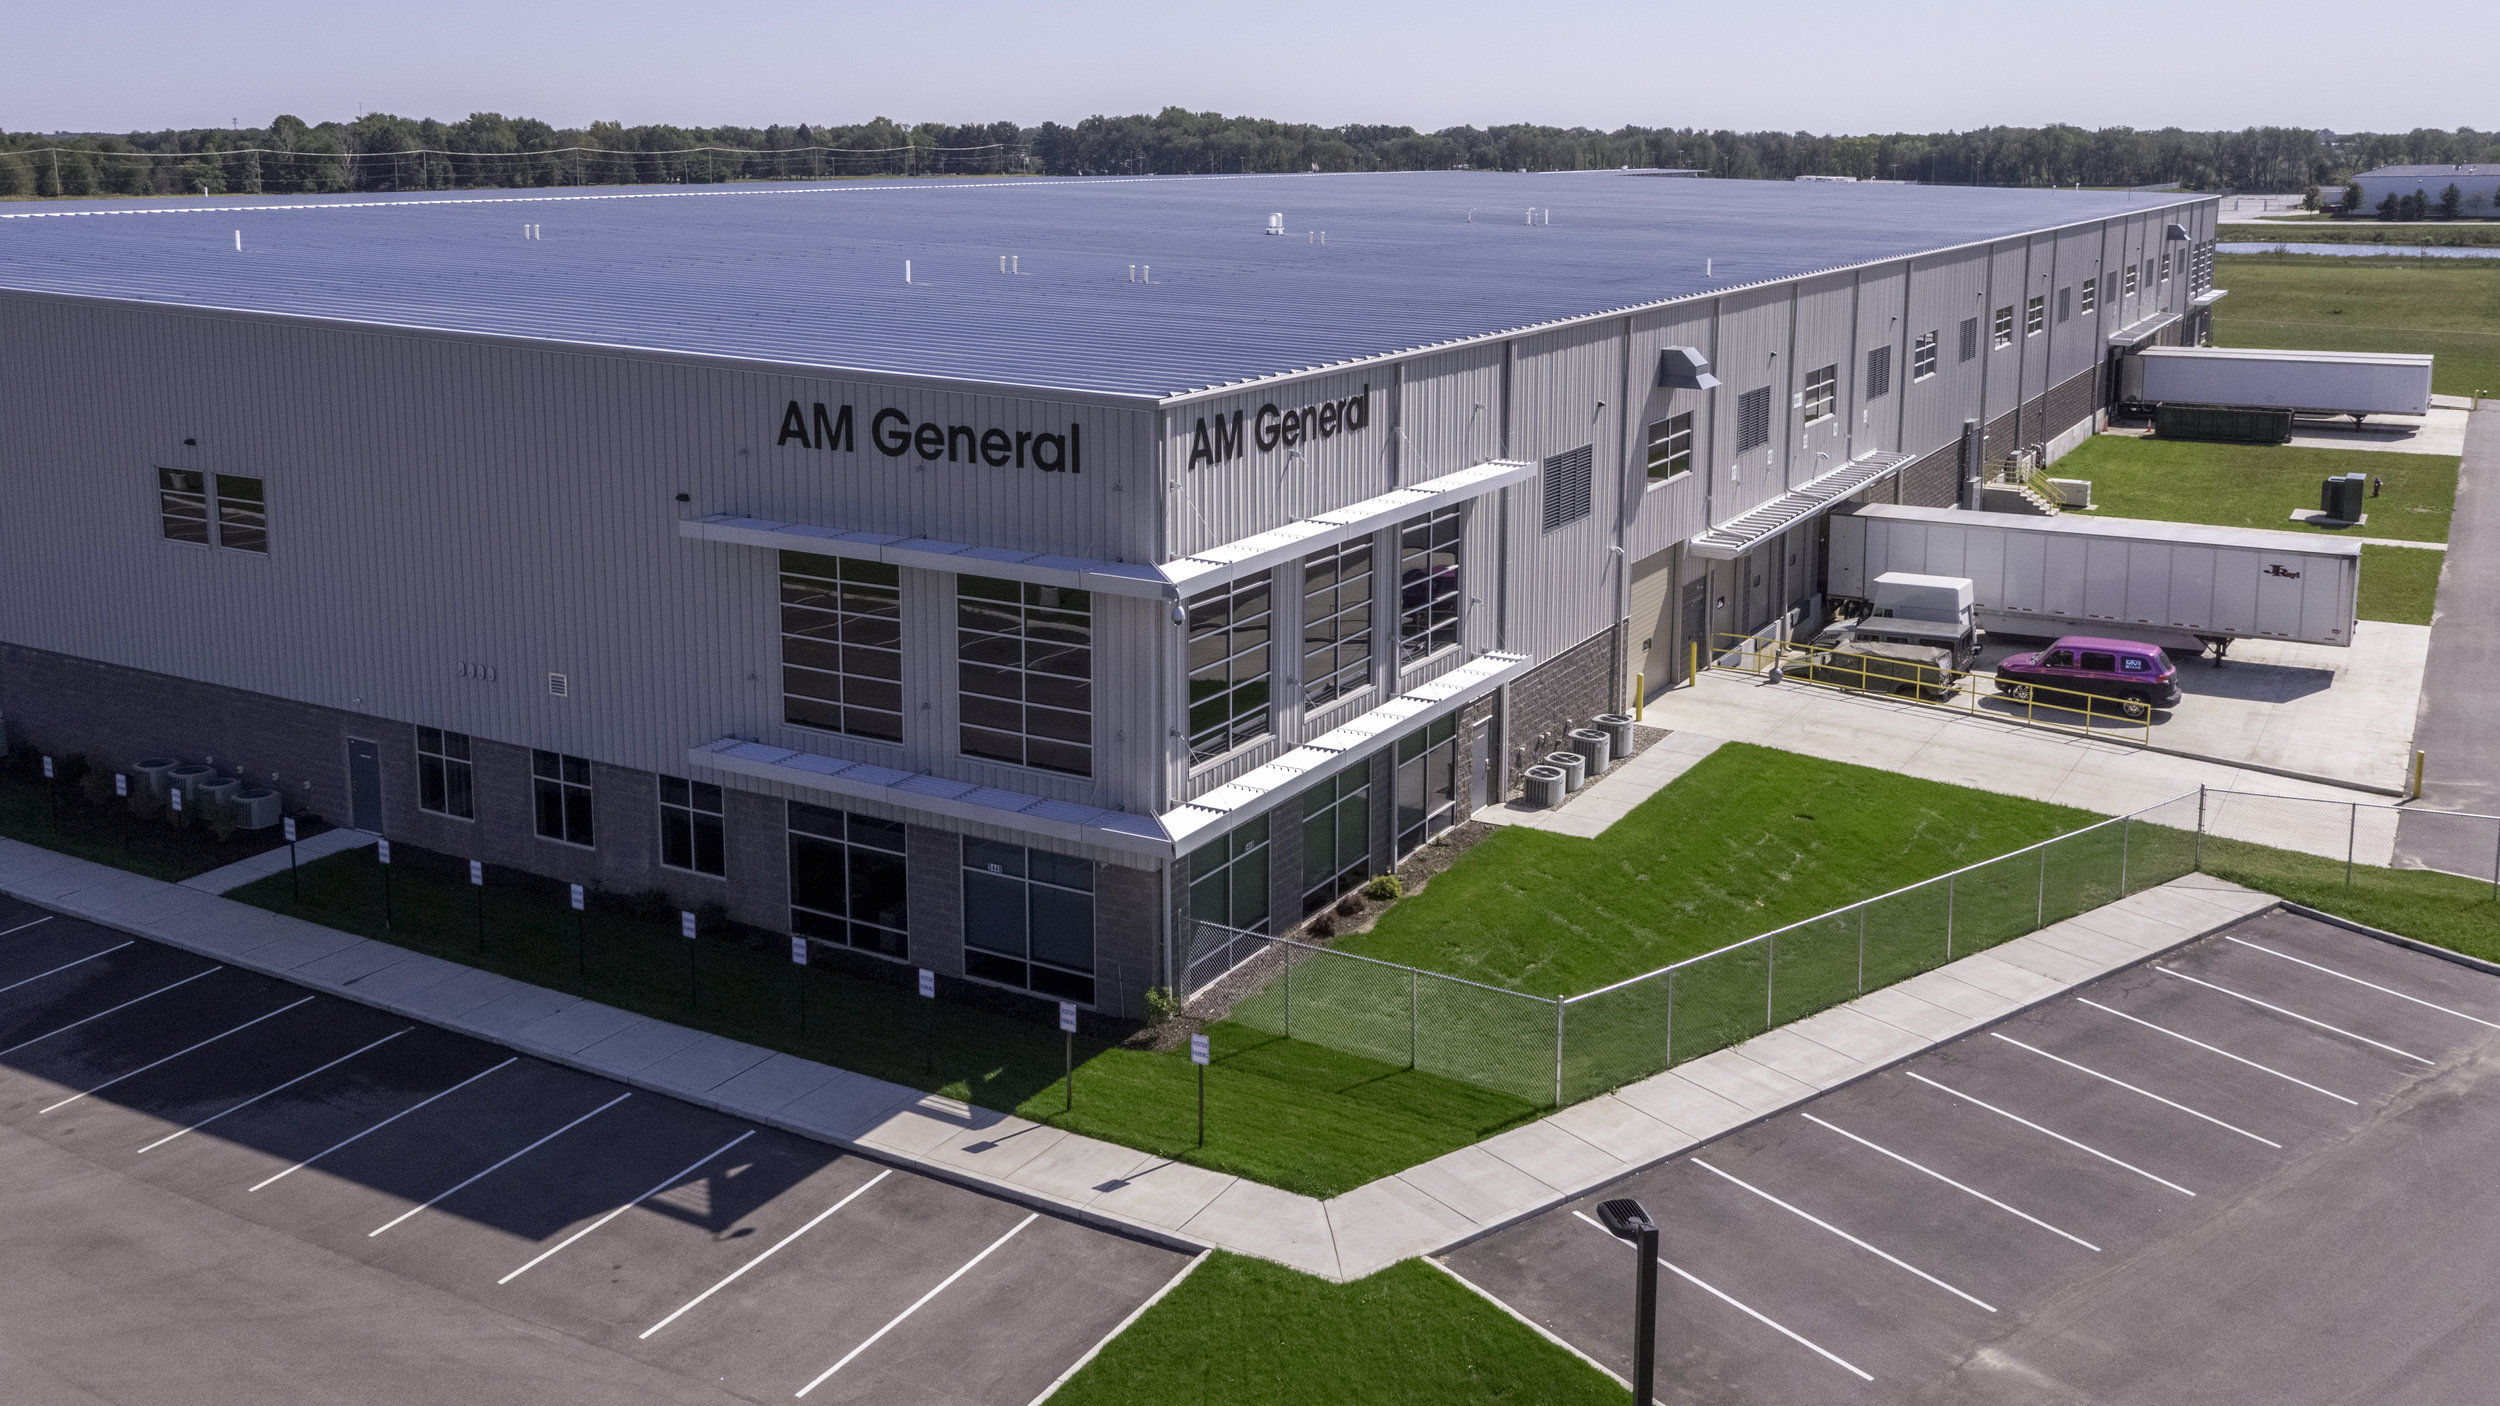 AM General Service, Parts & Logistics South Bend Indiana